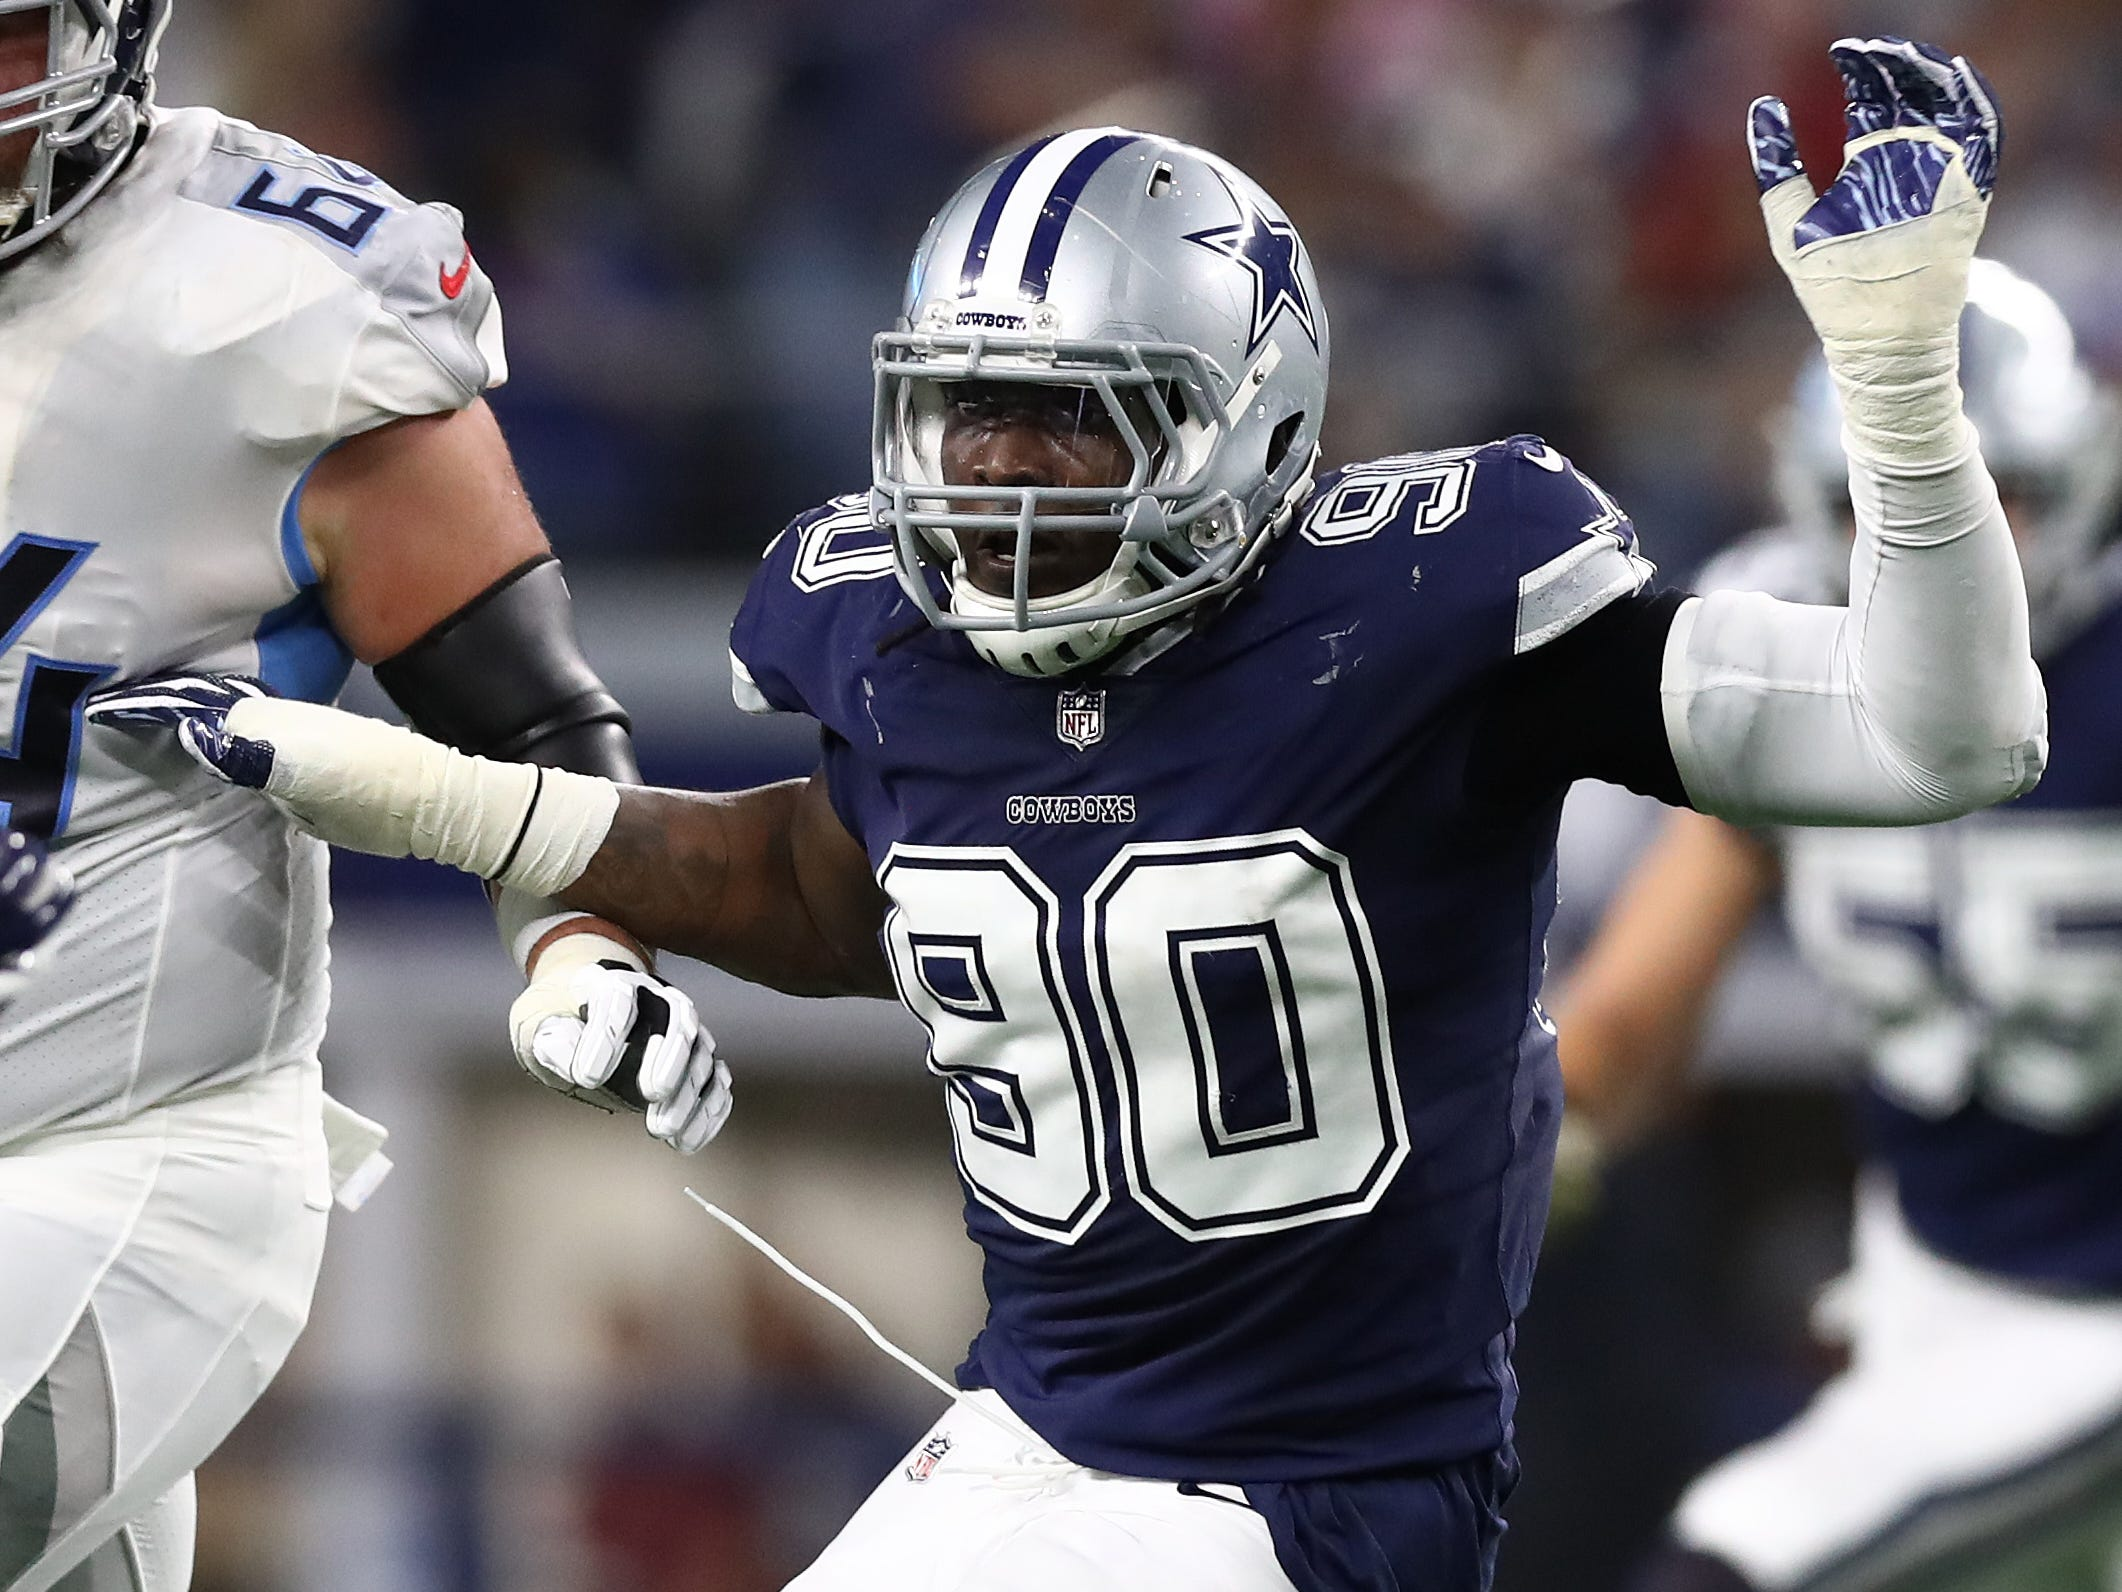 15. Cowboys (18): No marquee moves in draft or free agency, but Dallas knocked out a major contract (Demarcus Lawrence). Maintaining continuity is a plus.